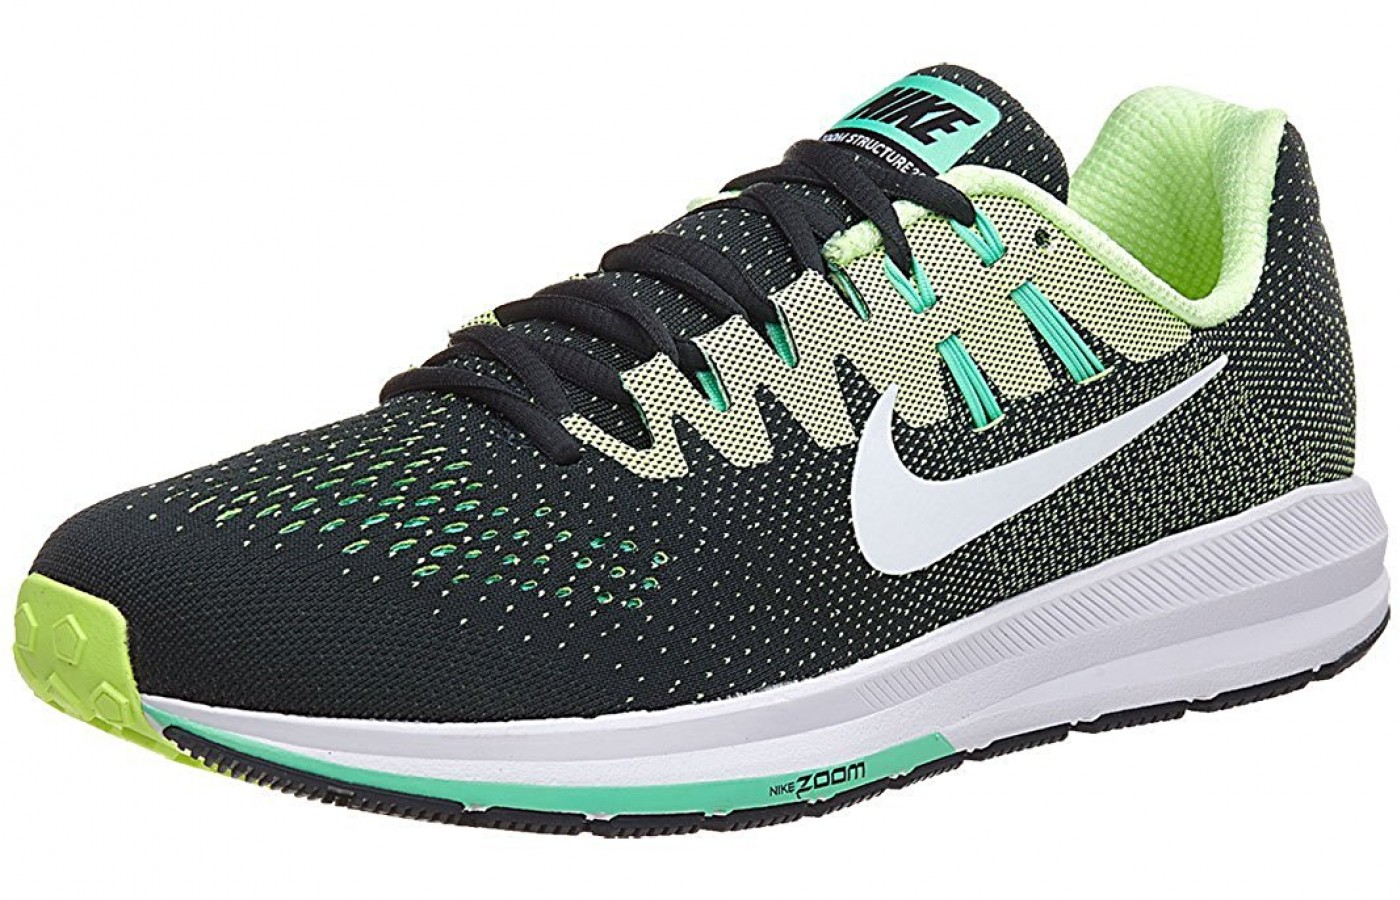 The Nike Air Zoom Structure 20 running shoe-black and green colorway